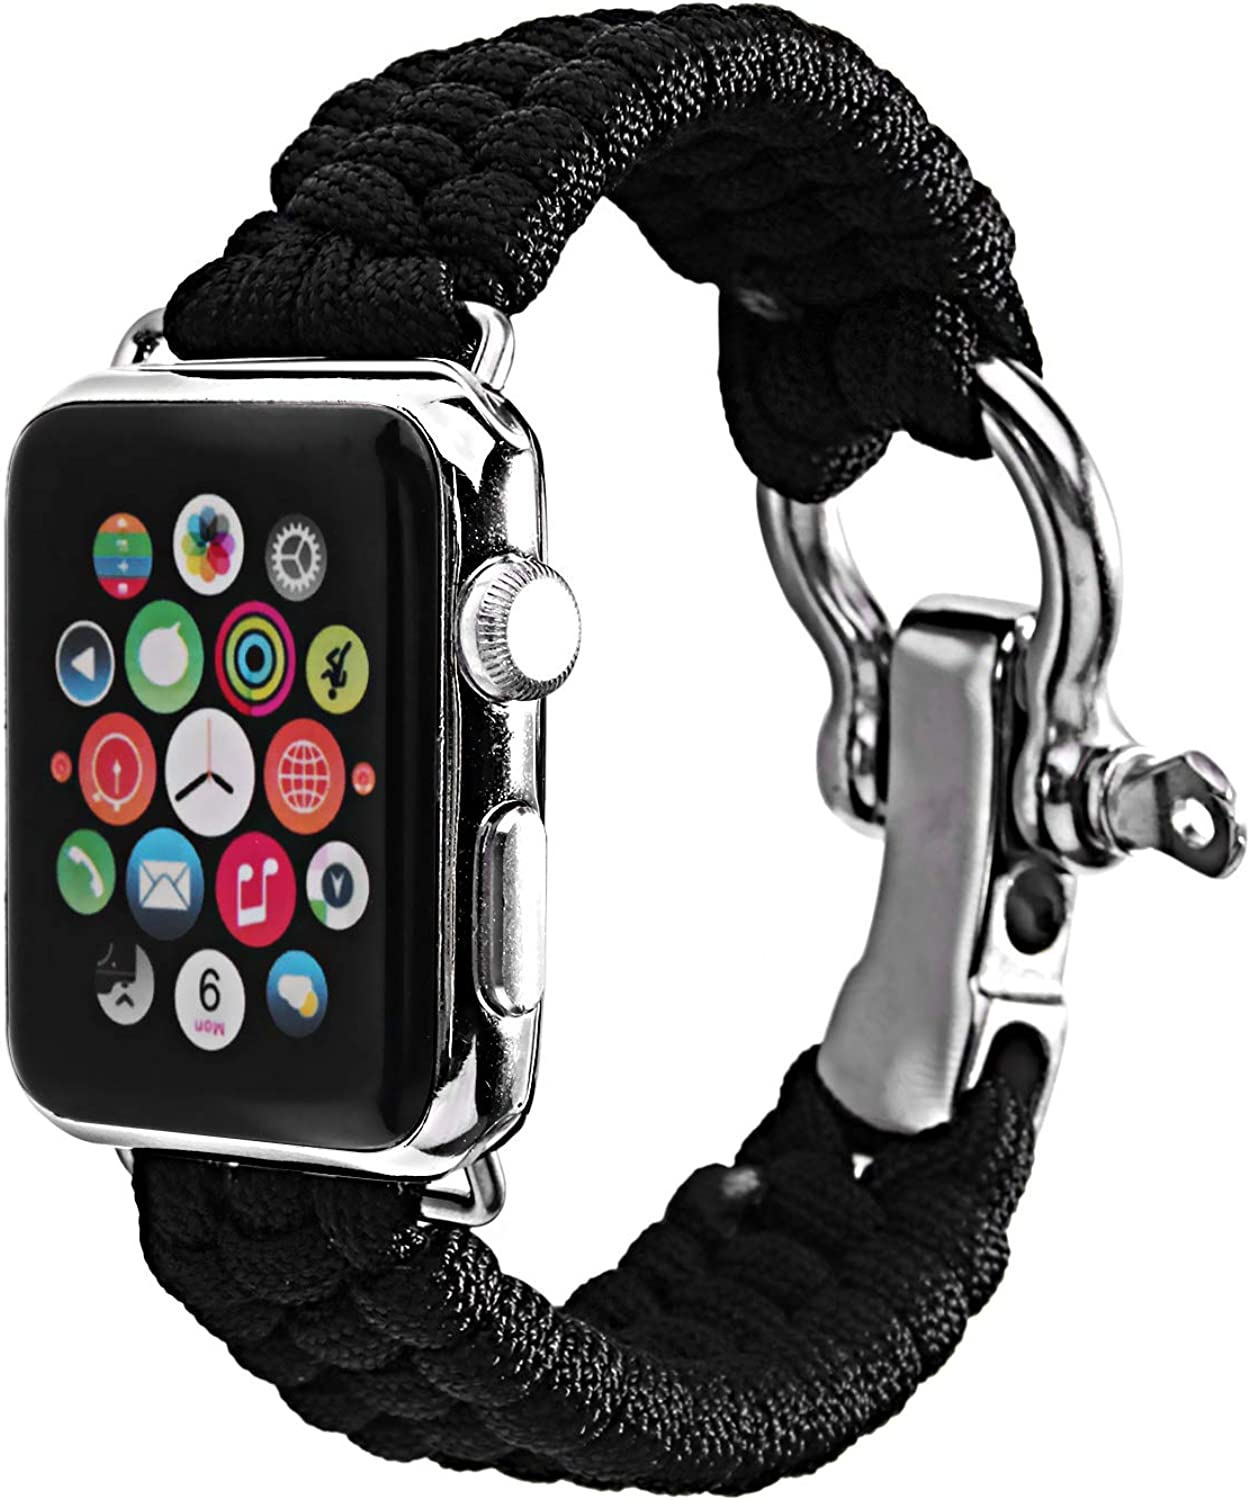 Baokai Band Compatible with Apple Watch 38mm 42mm, Nylon Rope Paracord Watch Band with Outdoor Survival Stainless Steel Shackle Replacement for Apple Watch Series 3 Series 2 Series 1 Sport Edition